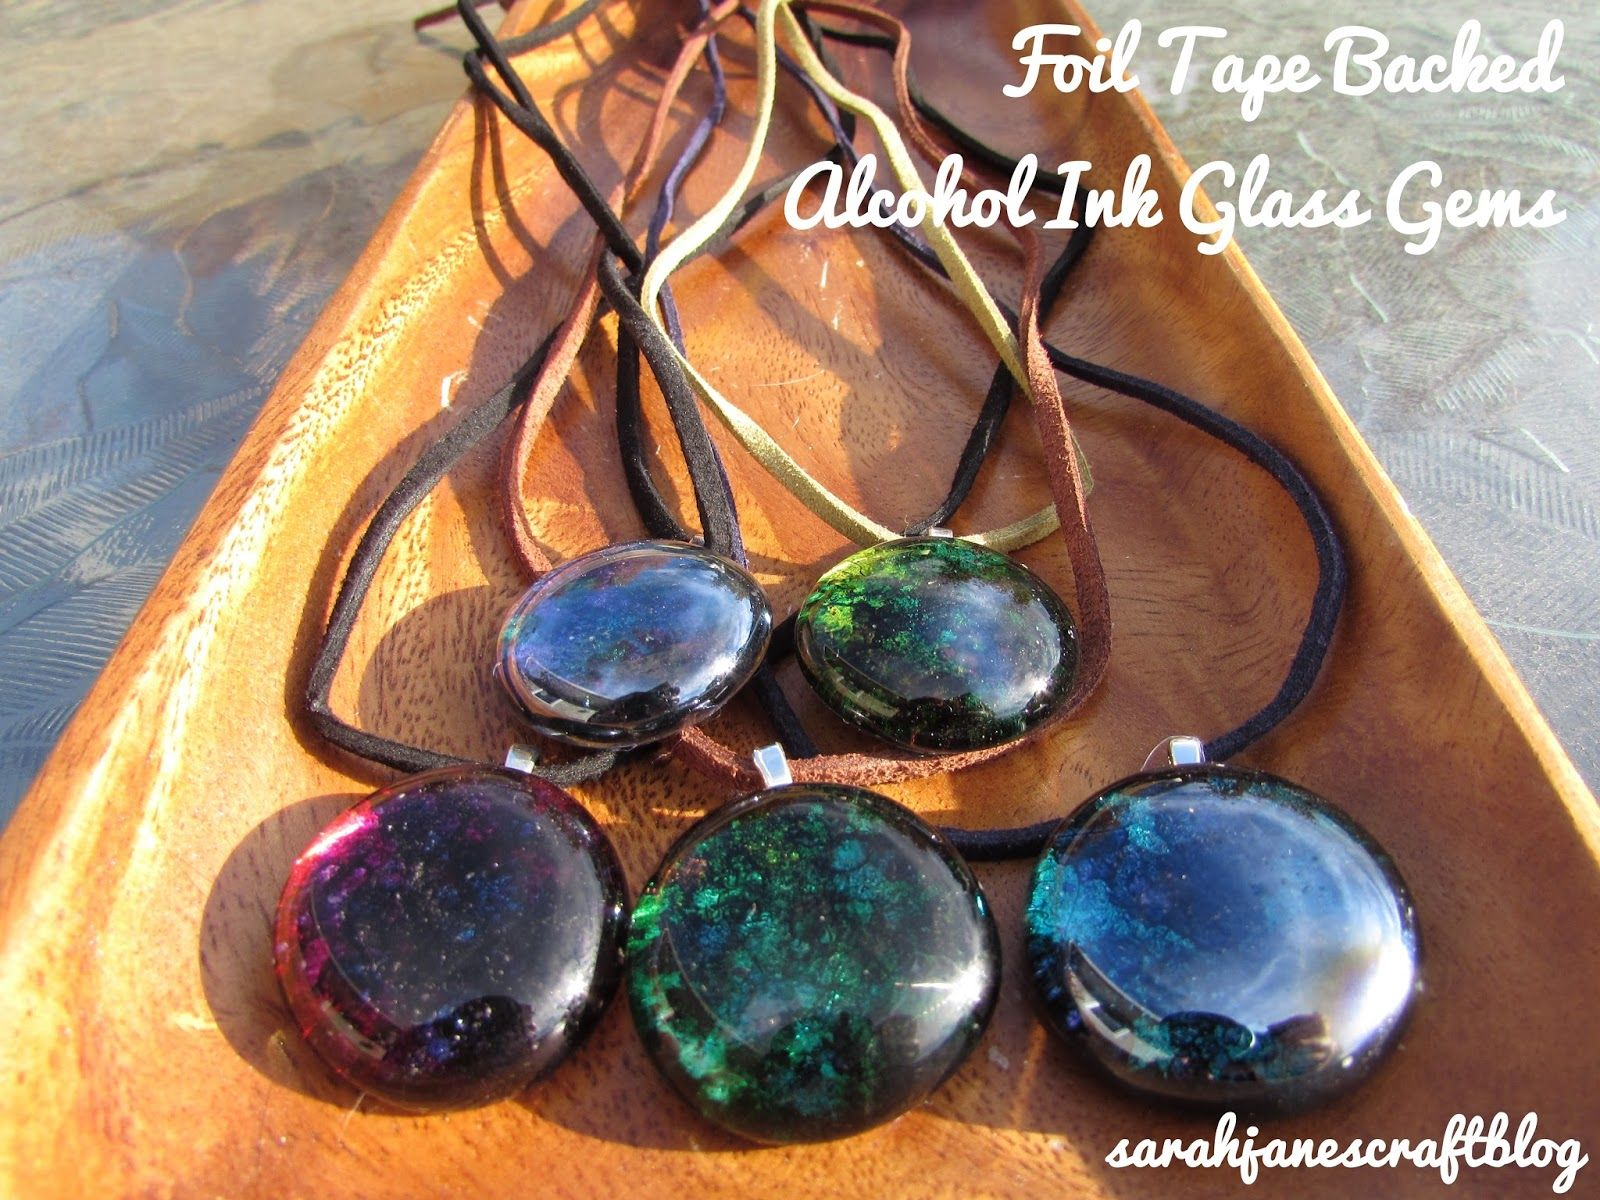 Flat glass marbles crafts - Diy Craft Tutorial For Alcohol Ink Decorated Glass Gem Flat Marbles Backed With Foil Tape And